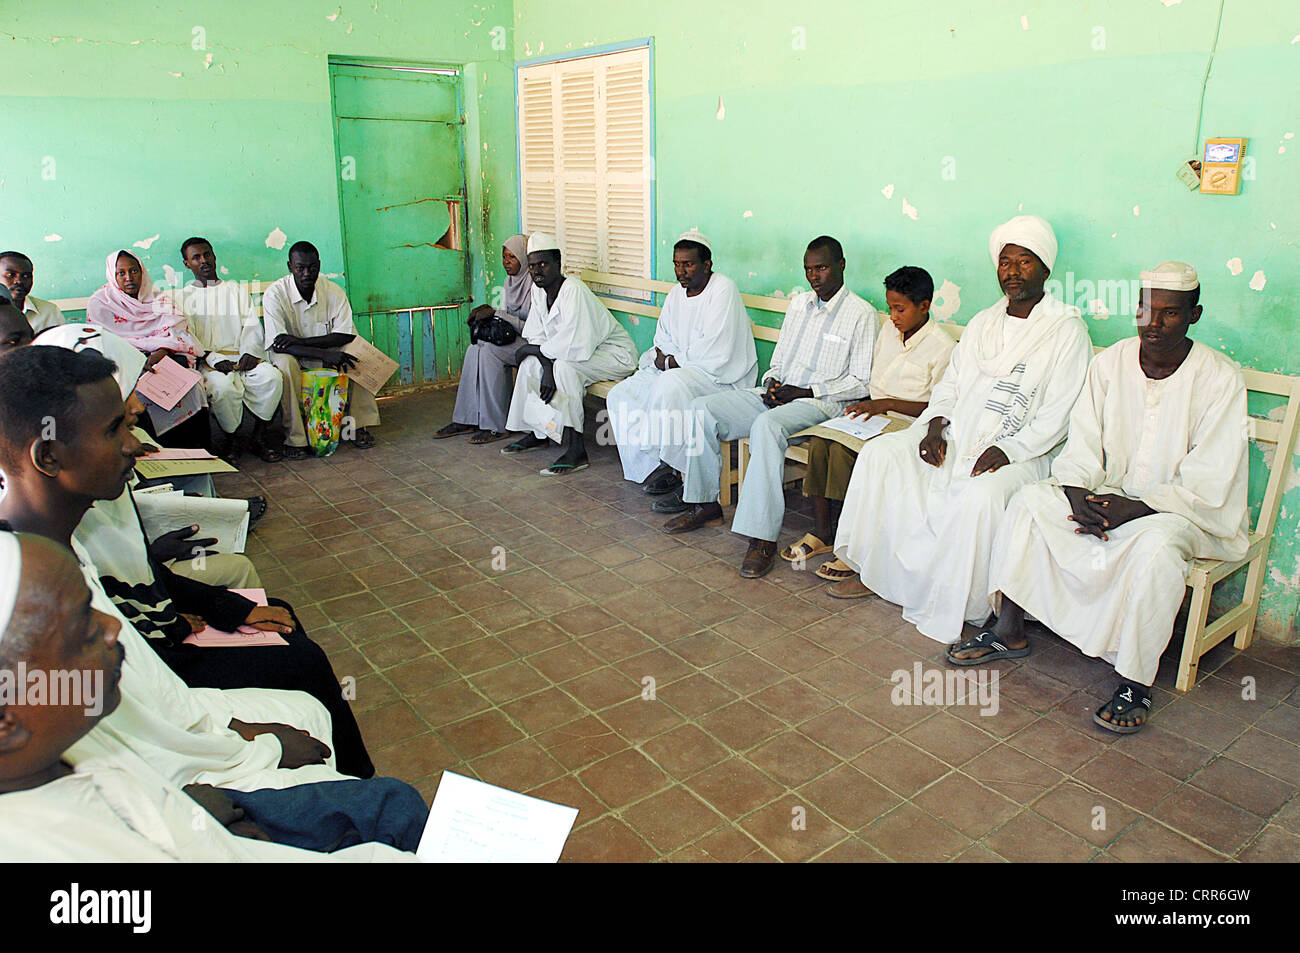 Patients wait to be called by their doctor, in a typical waiting room for outpatients in Soba, Sudan - Stock Image